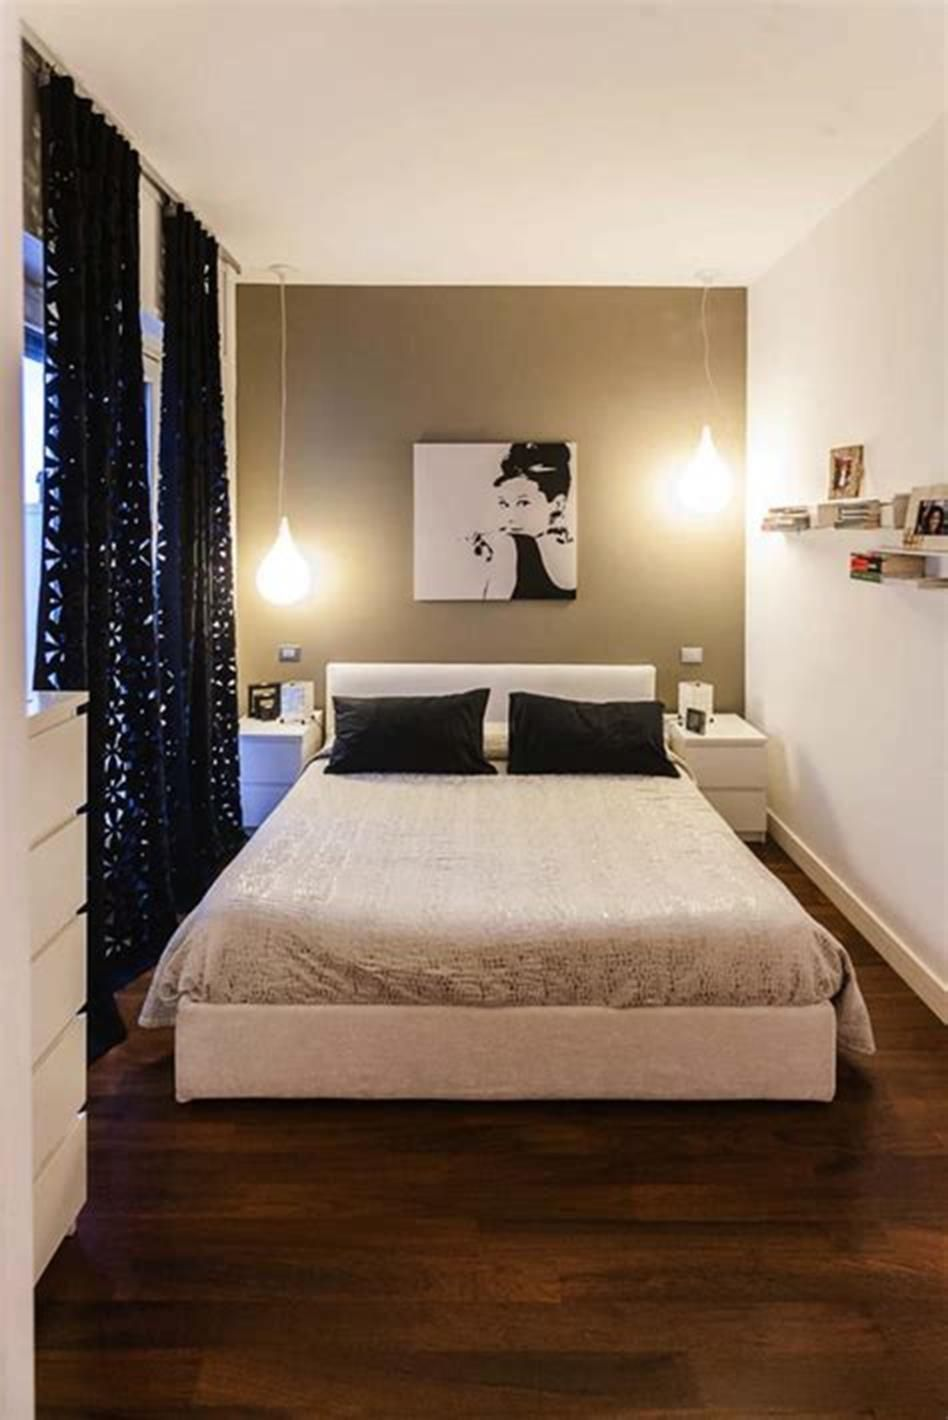 55 Amazing Small Master Bedroom Decorating Design Ideas On A Budget Craft Home Ideas Small Bedroom Decor Small Bedroom Small Master Bedroom